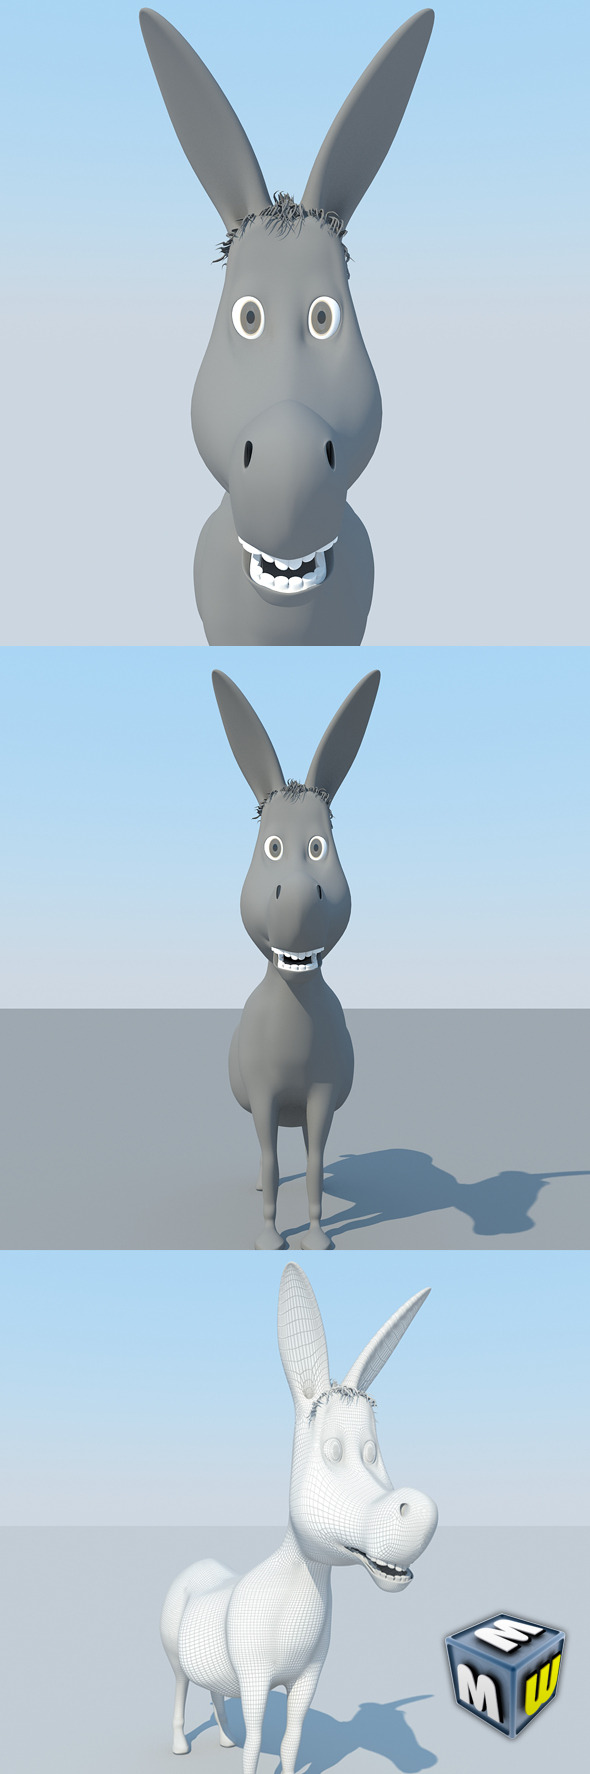 Donkey Cartoon MAX 2011 - 3DOcean Item for Sale